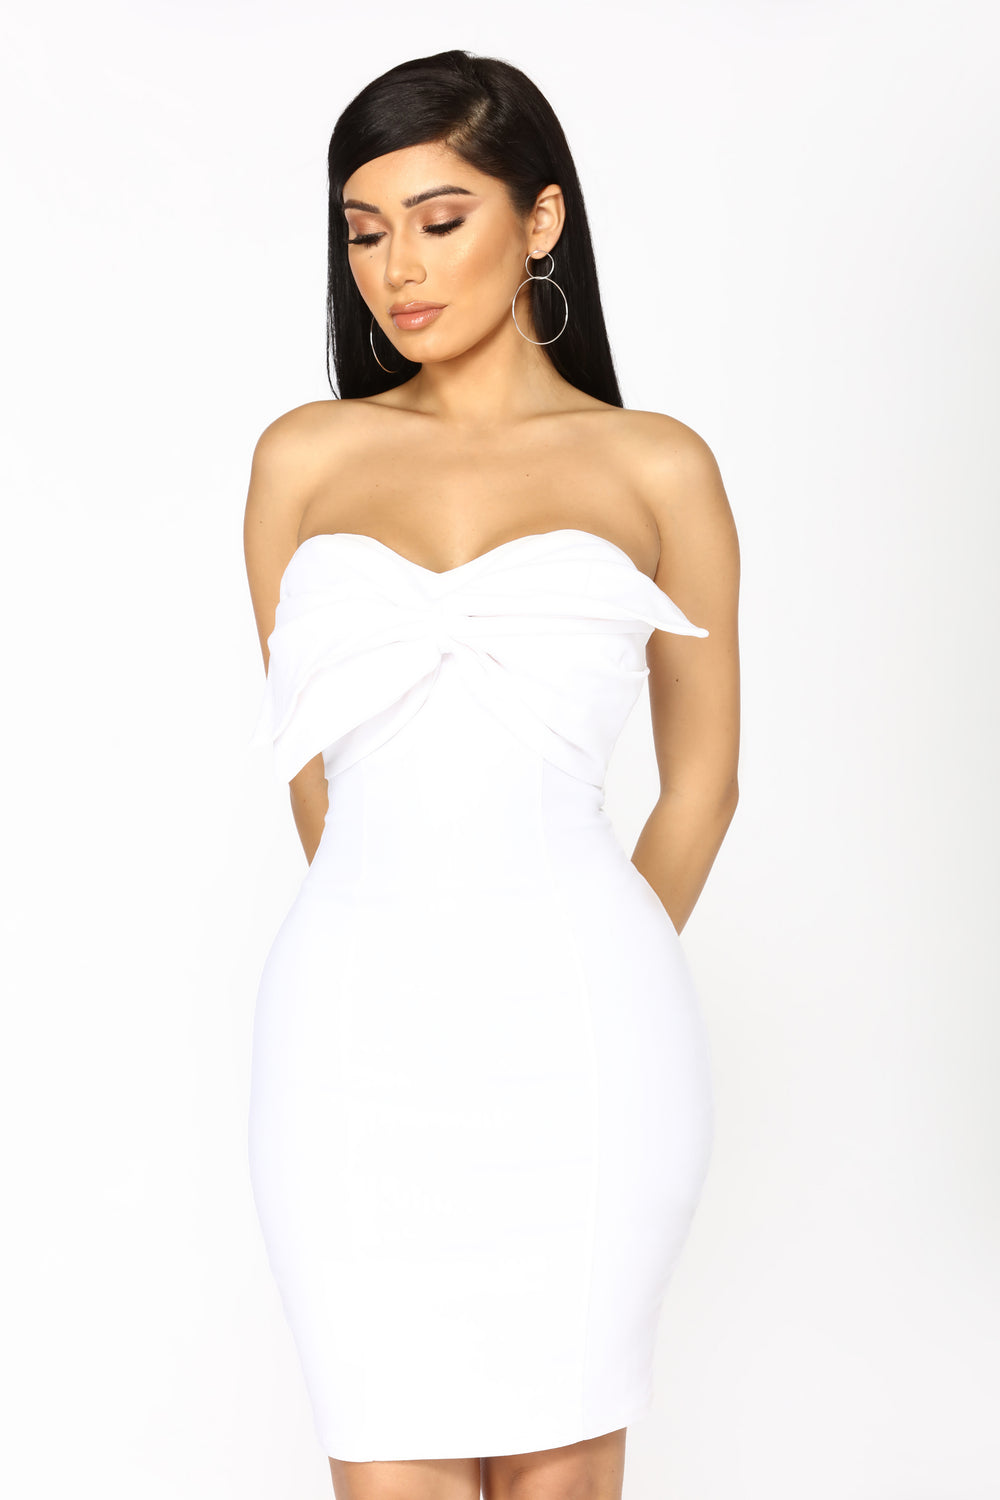 Bow And Arrow Dress - White